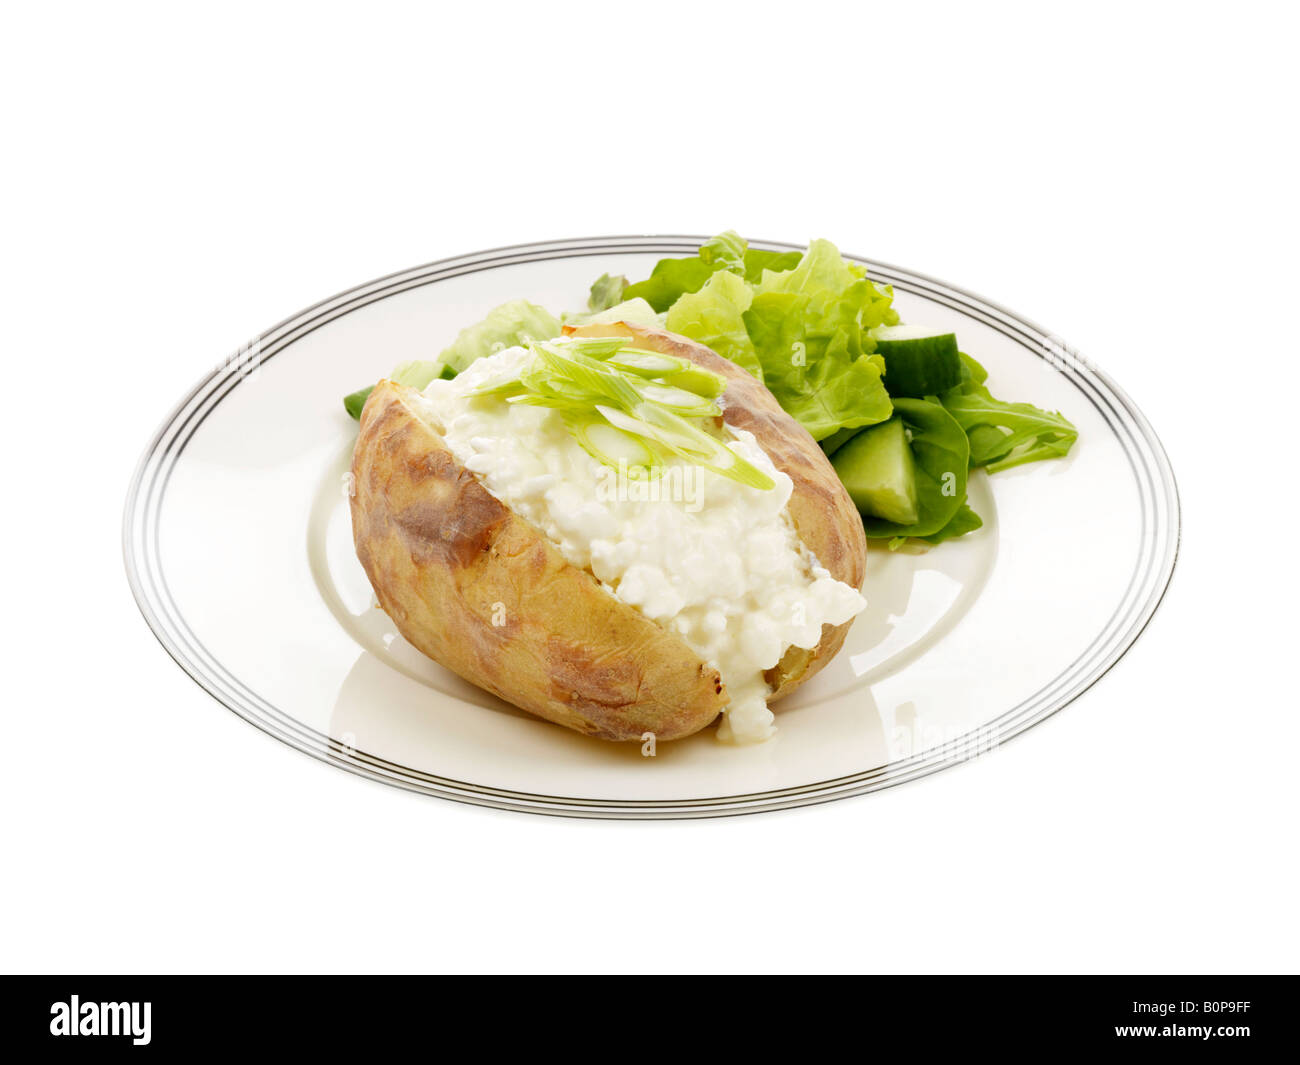 Astounding Jacket Potato With Cottage Cheese And Spring Onions Stock Download Free Architecture Designs Scobabritishbridgeorg